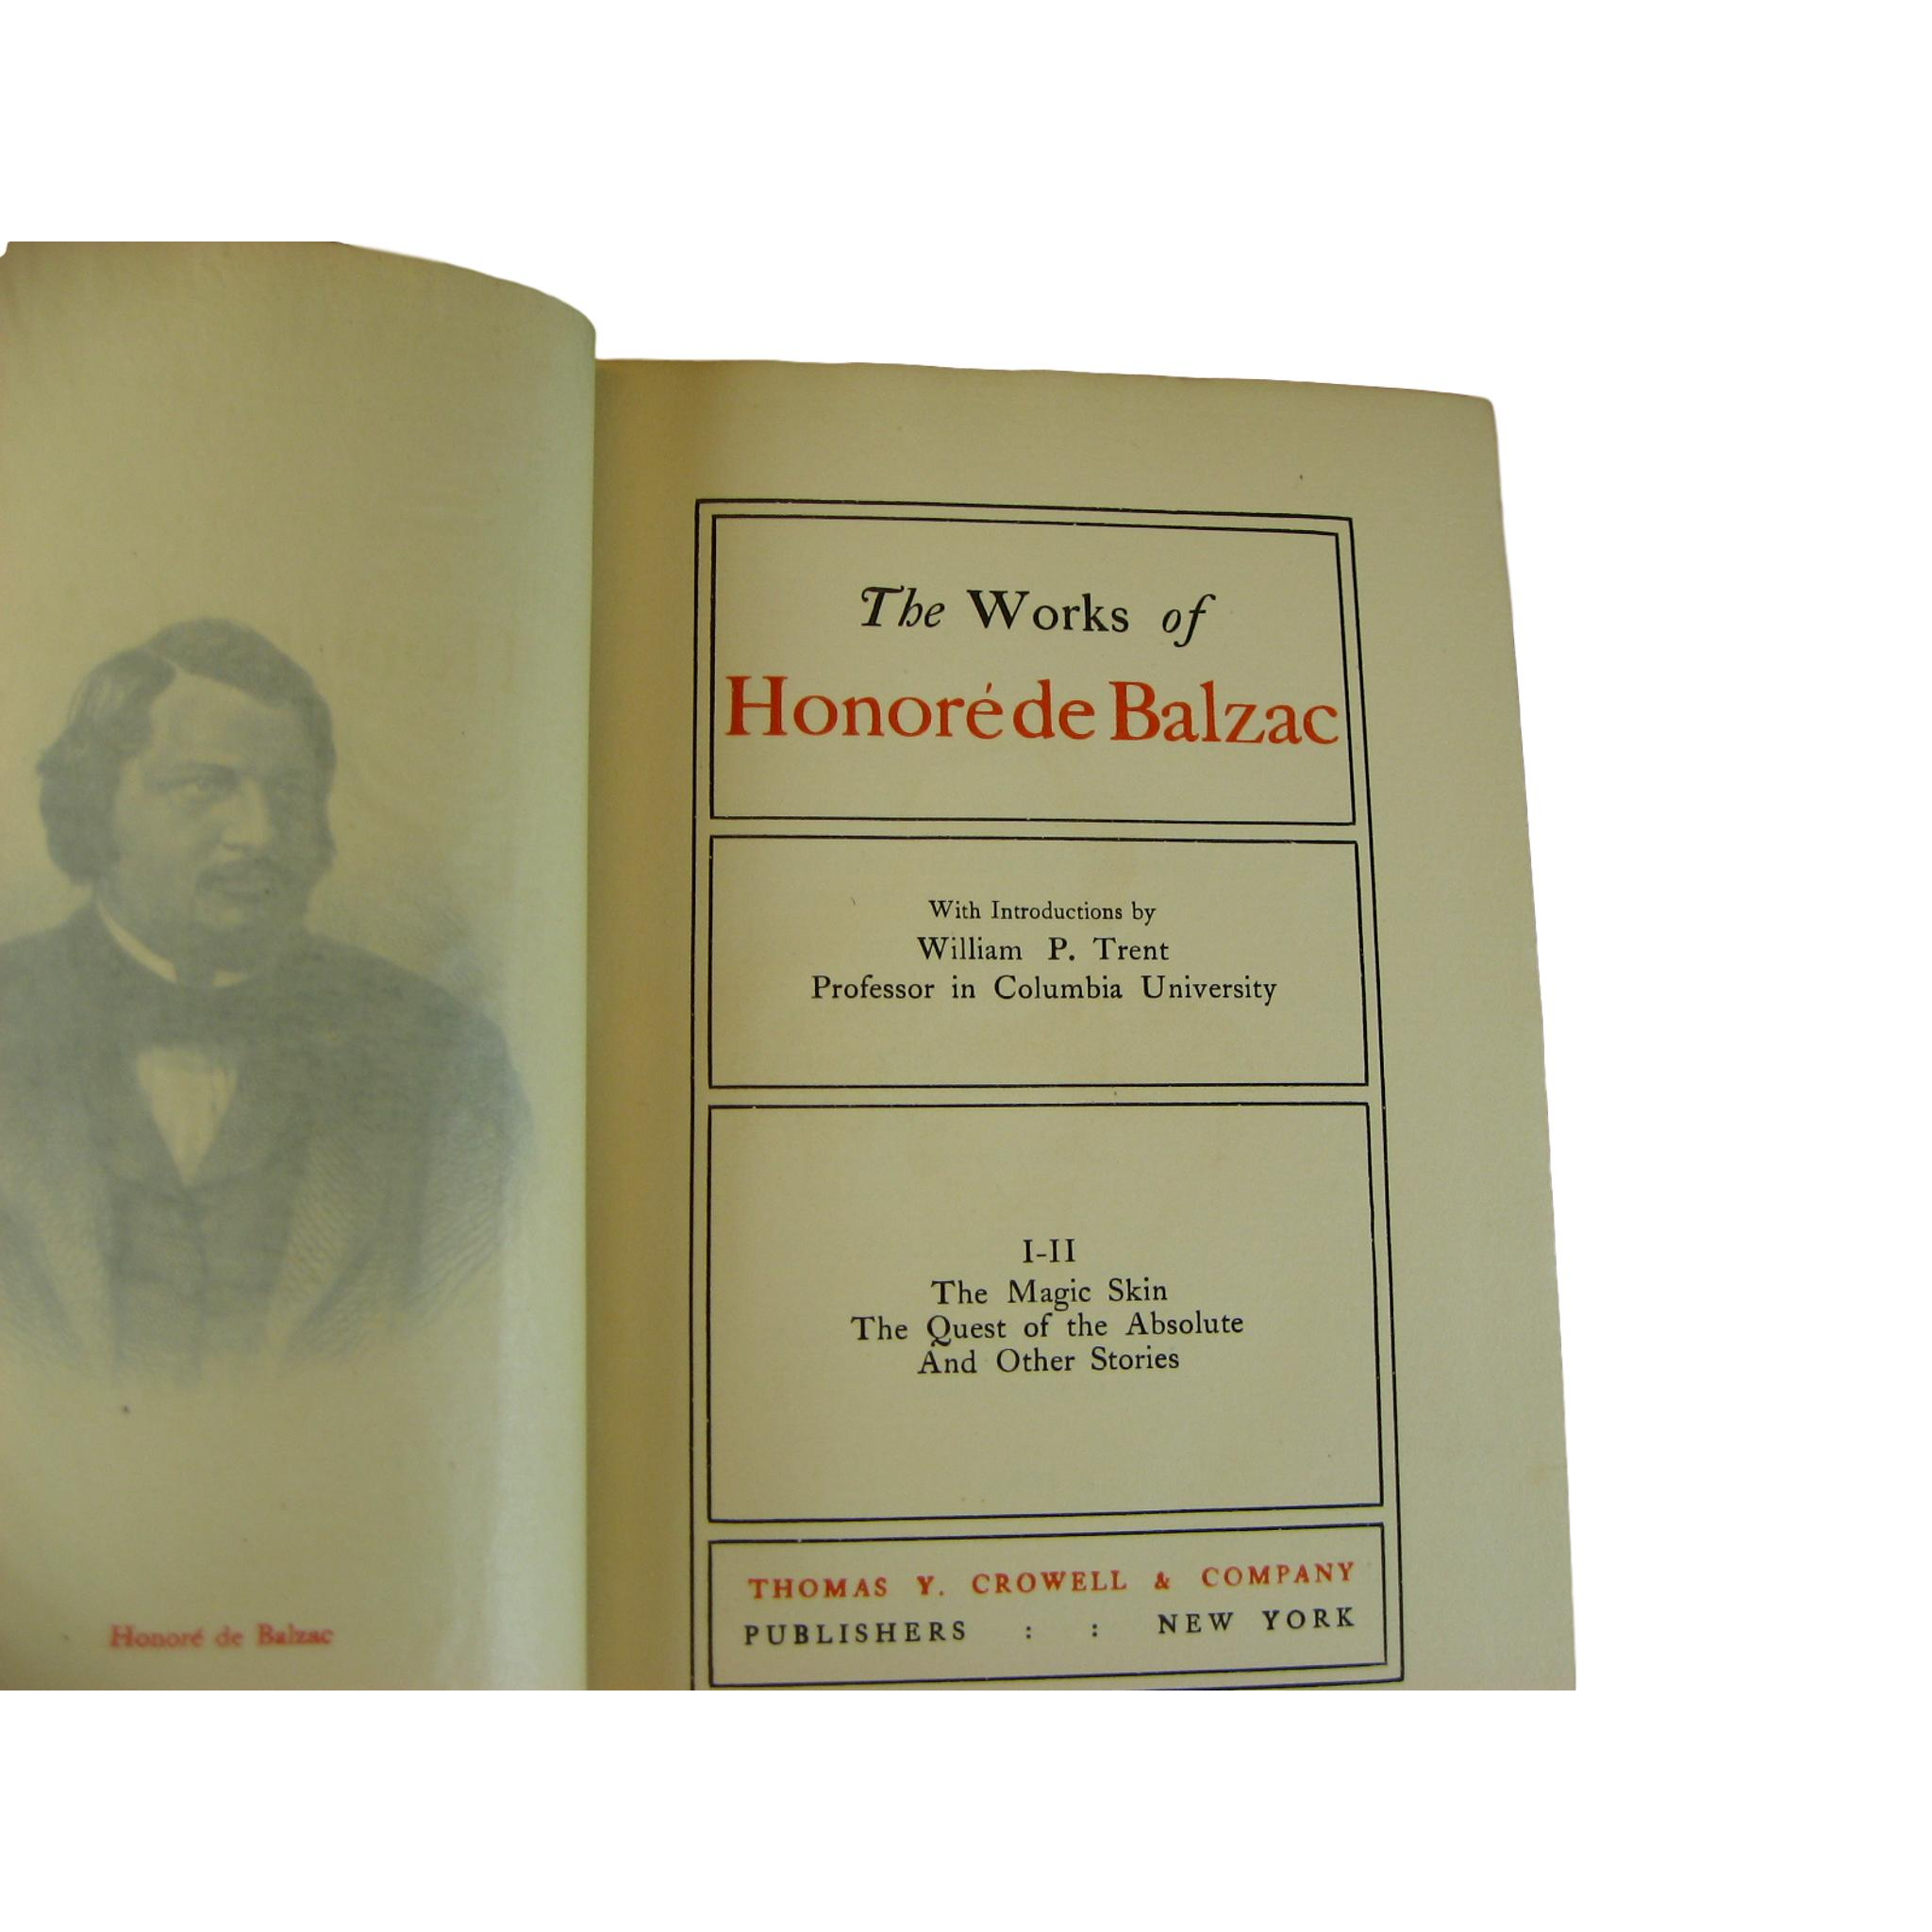 Antique Decorative Books, Works of Honoré de Balzac, Shelf Decor, S/6 - Decades of Vintage